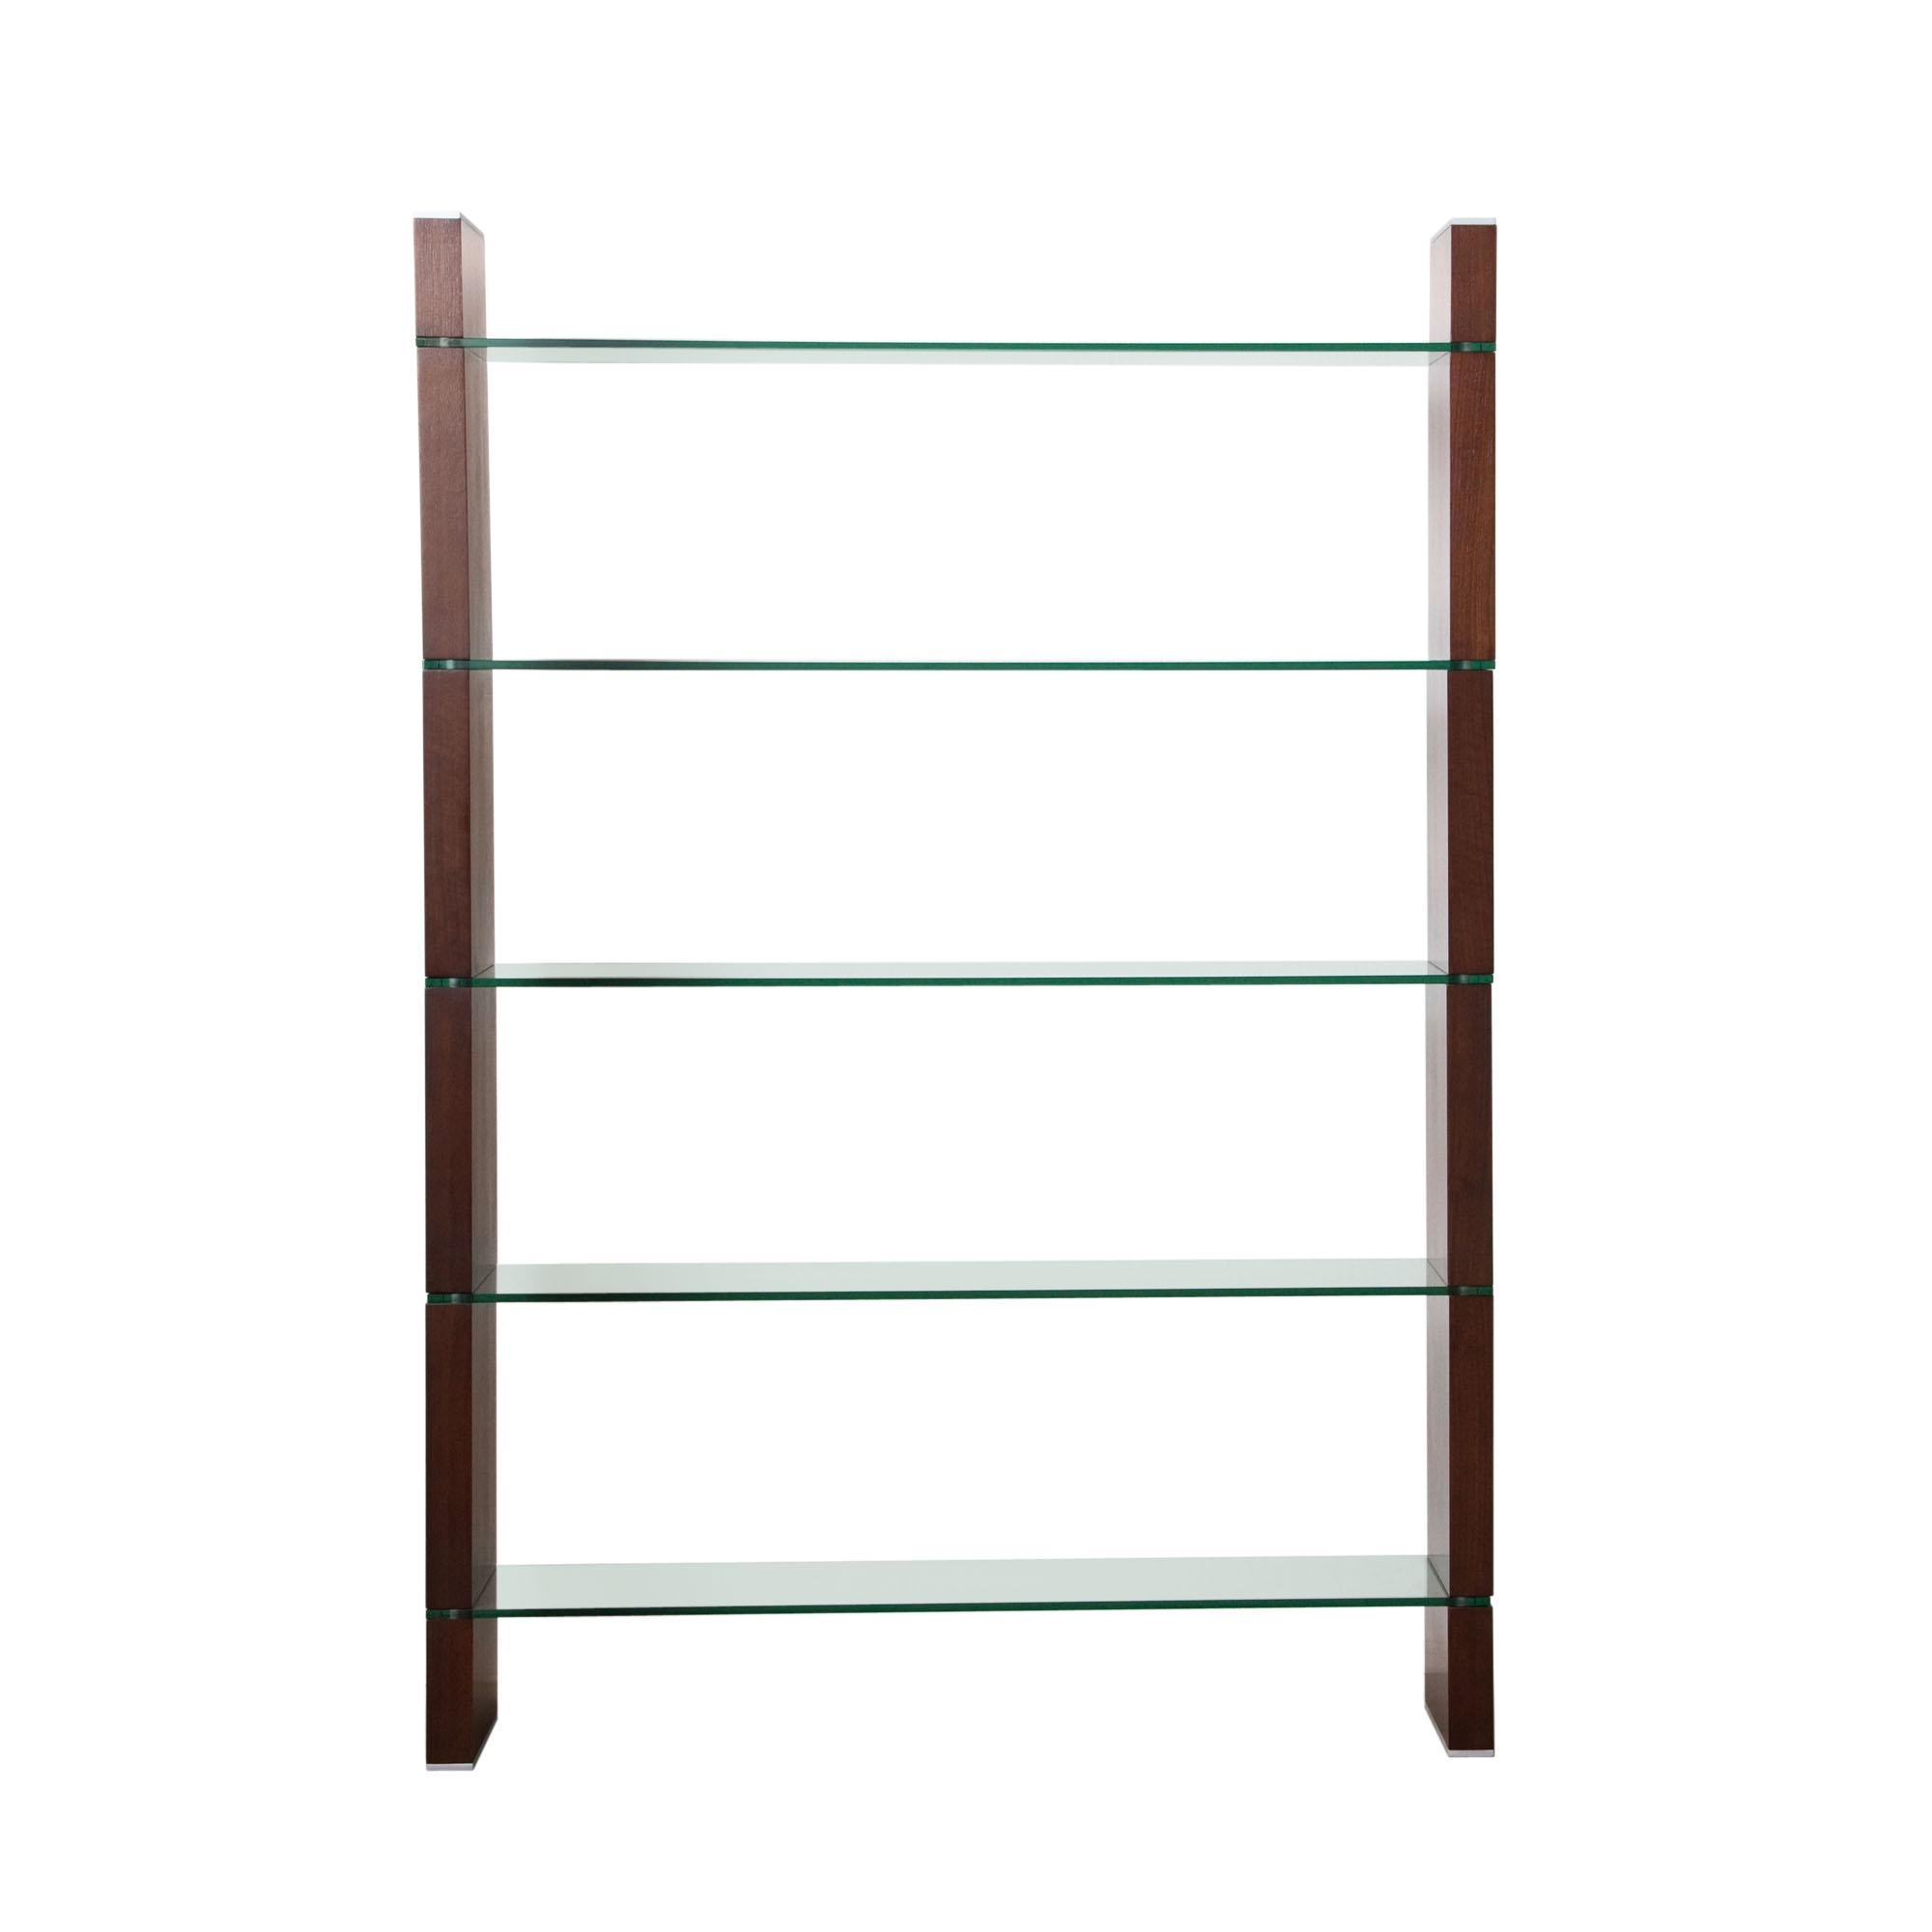 Diamond Sofa Home Accents Glass Bookcase and Room Divider - Item Number: W285JA